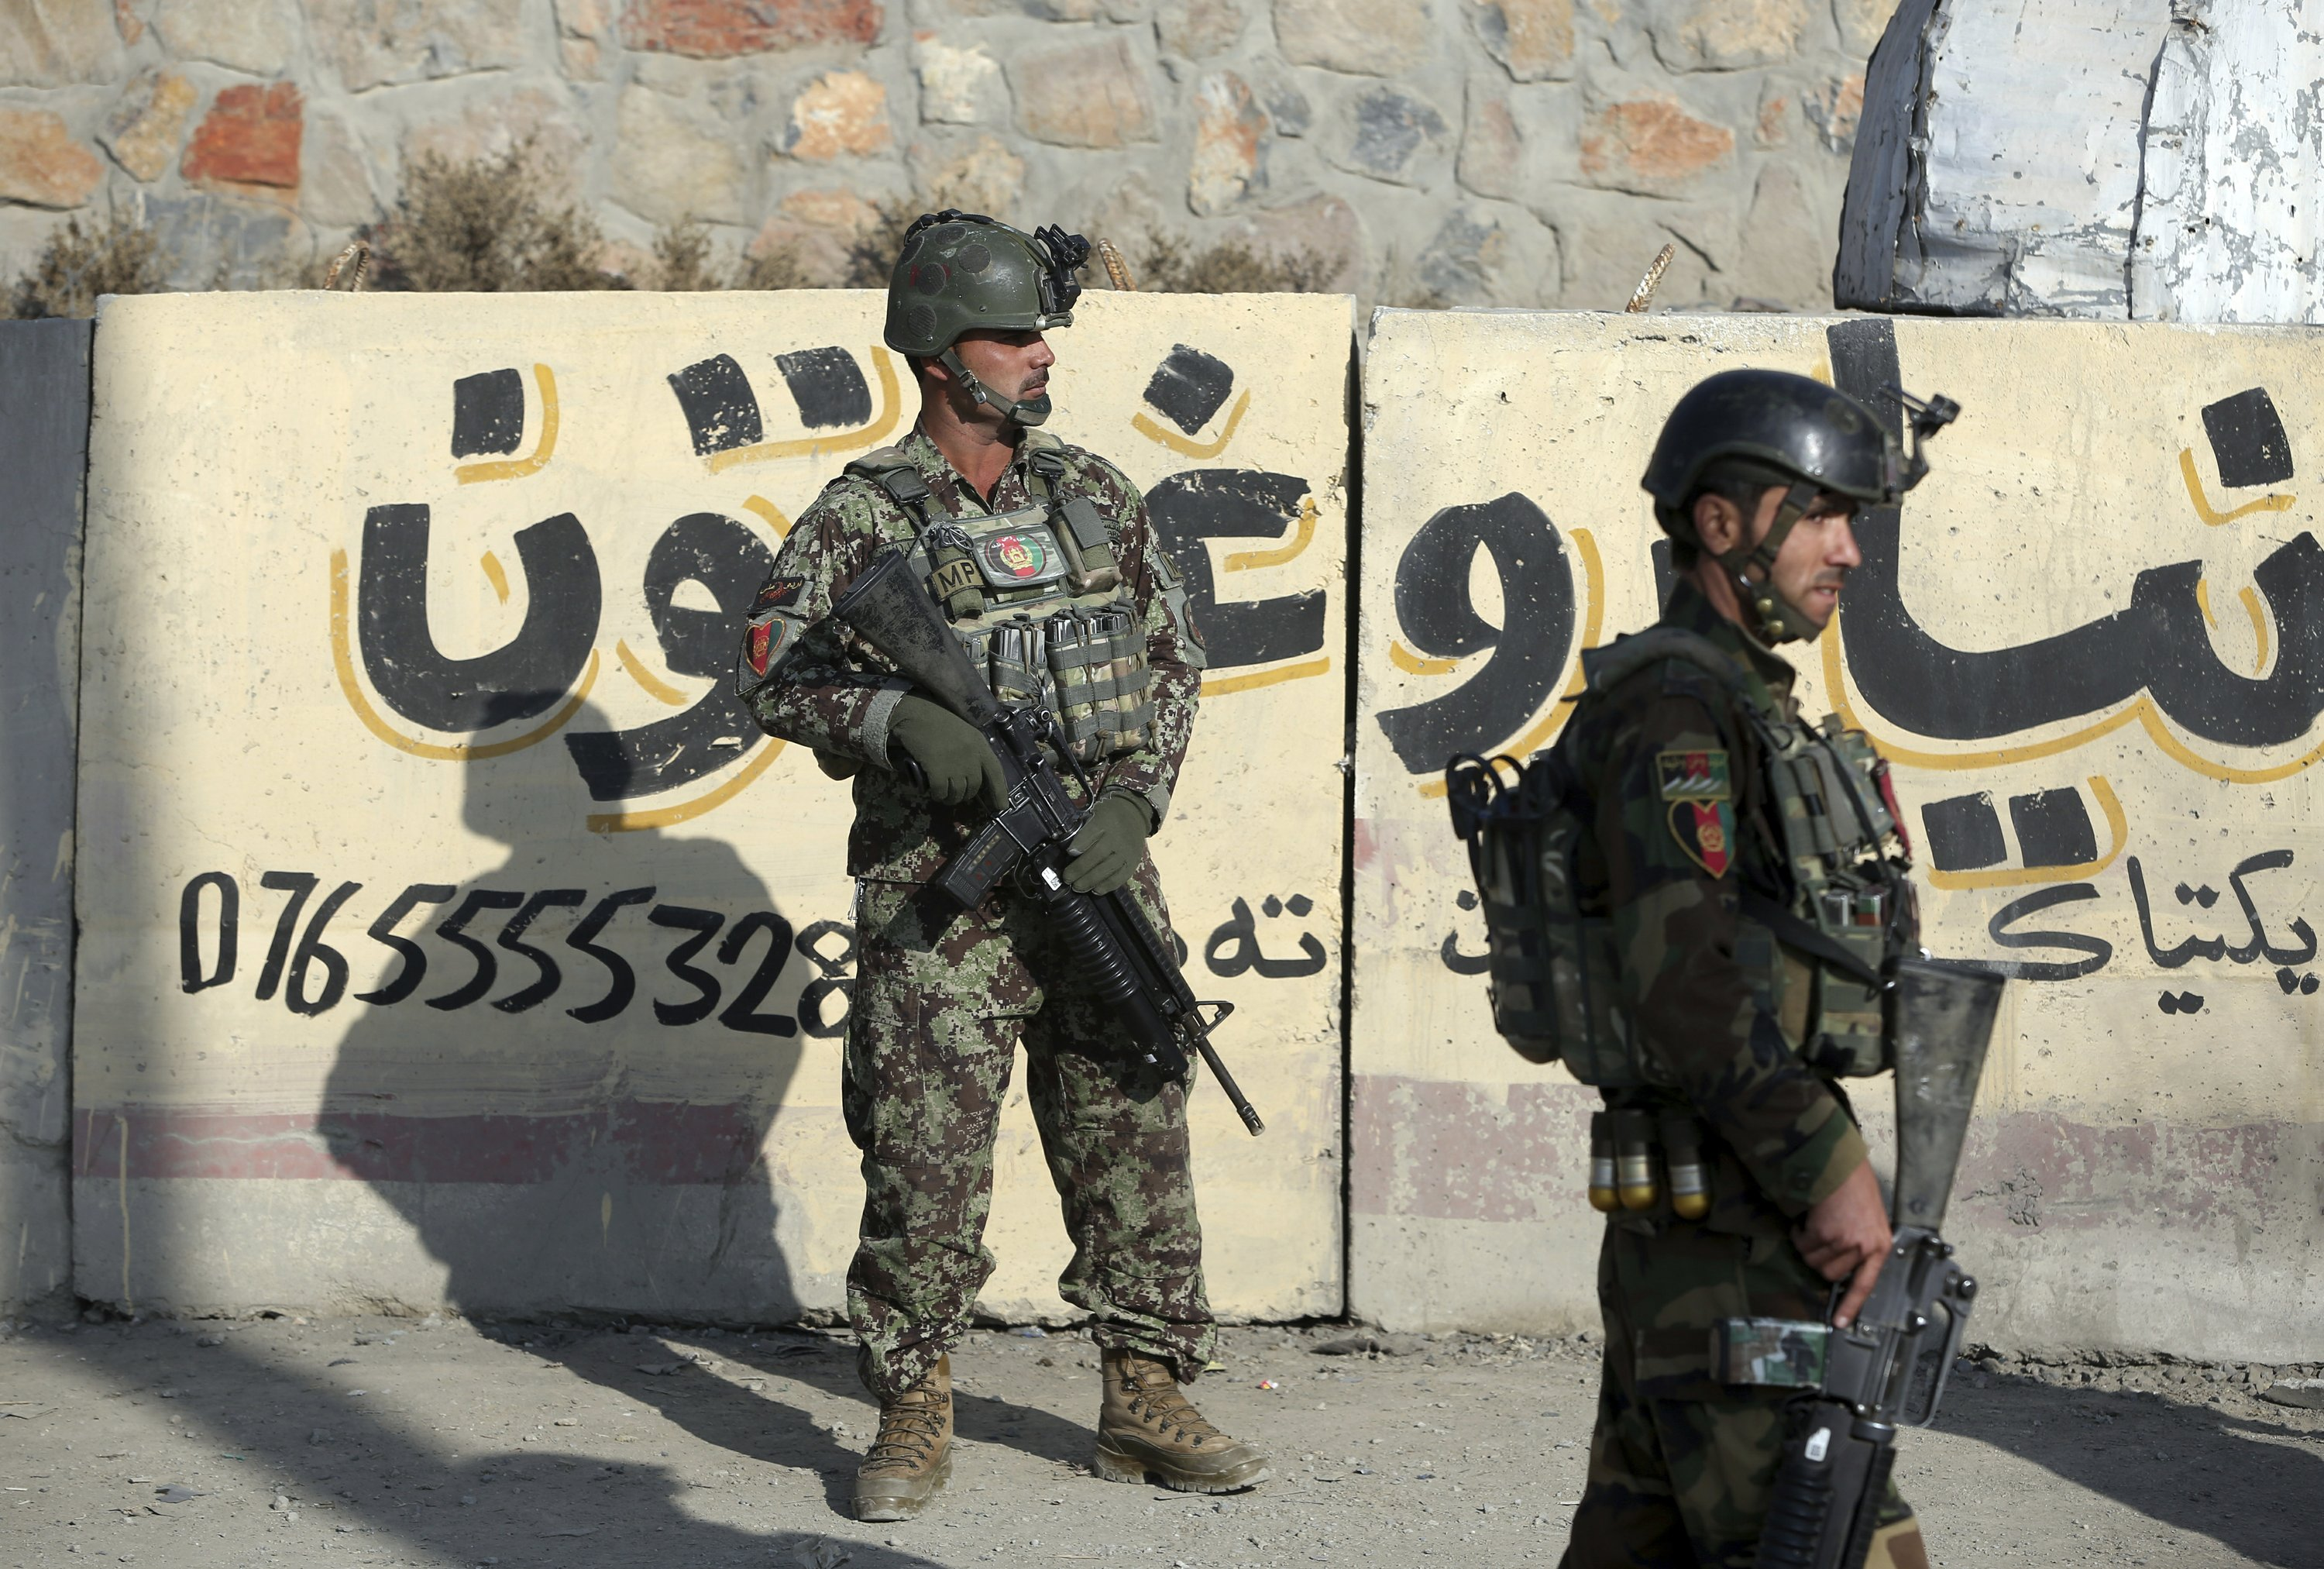 Grenades target military center, wound 5 in Afghan capital